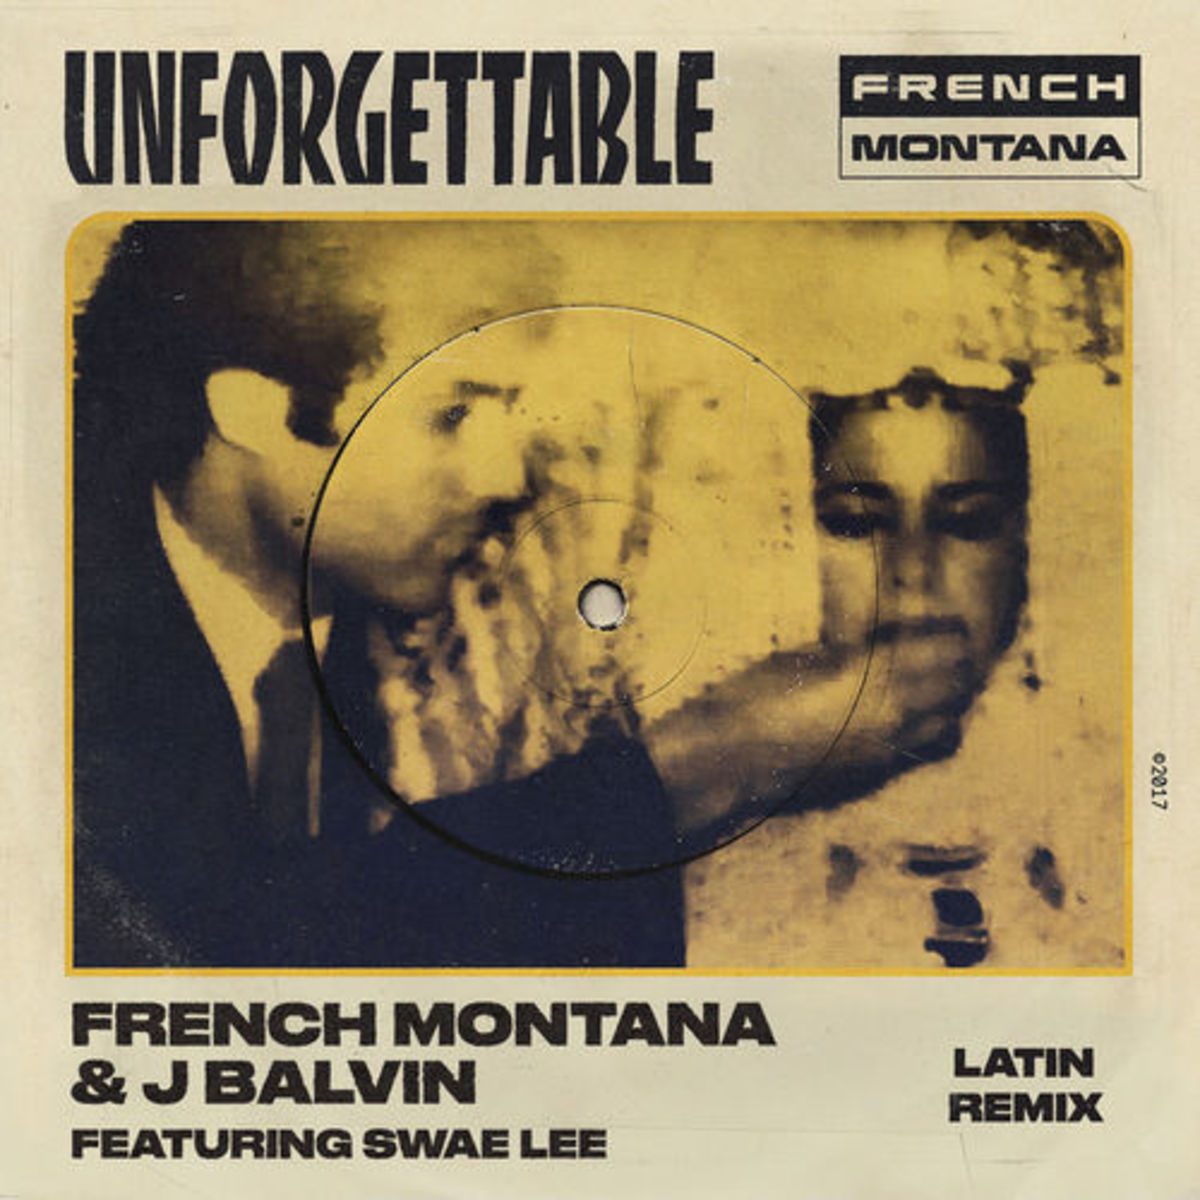 french-montana-j-balvin-unforgettable-latin-remix.jpg